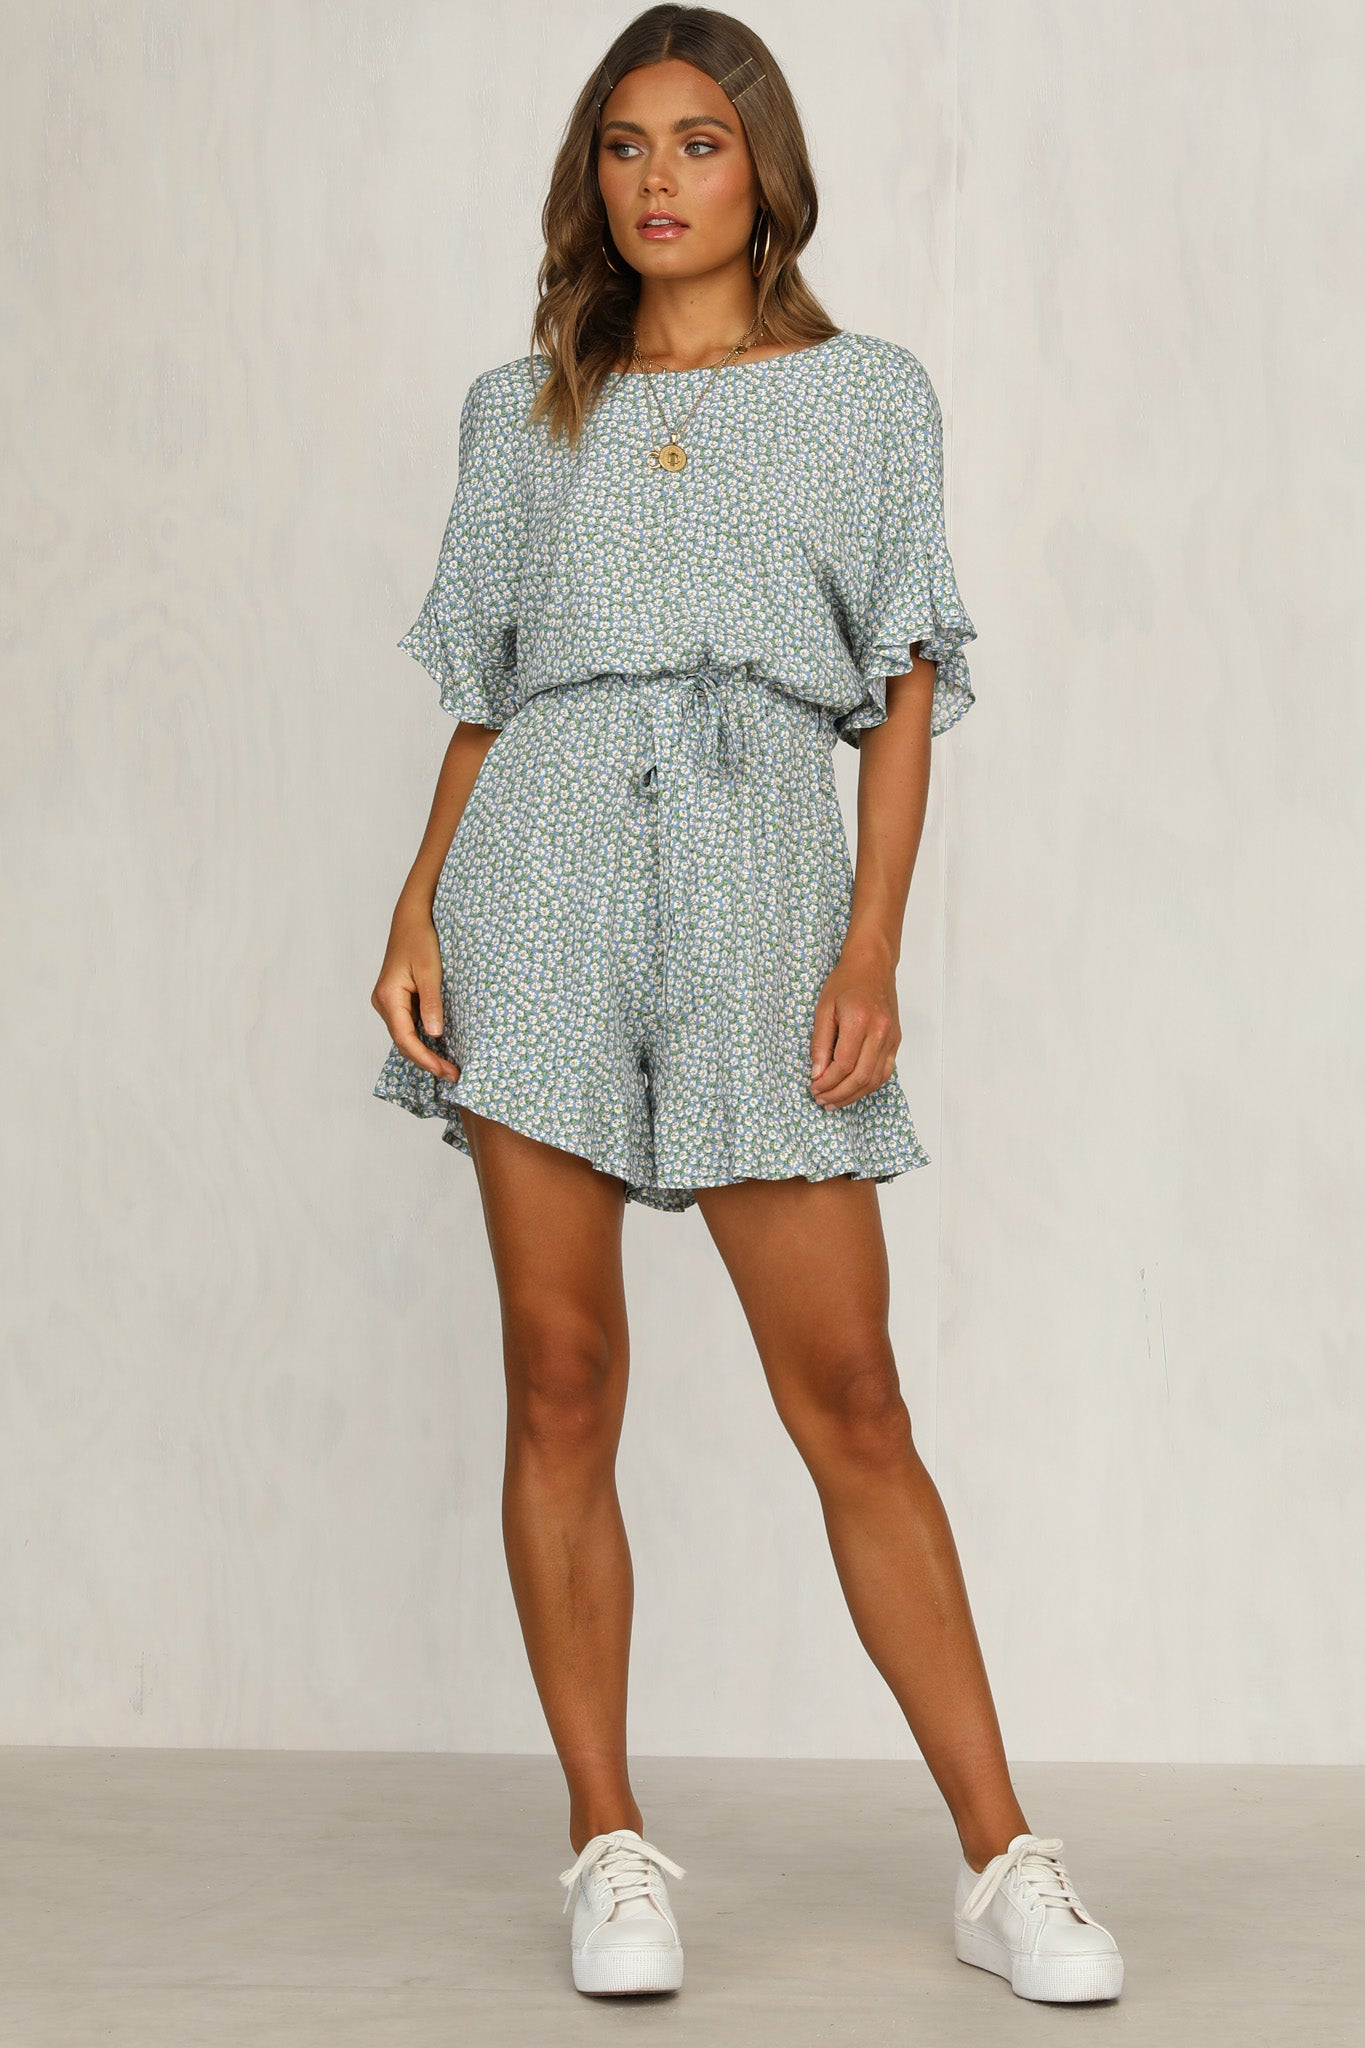 Give Your All Playsuit